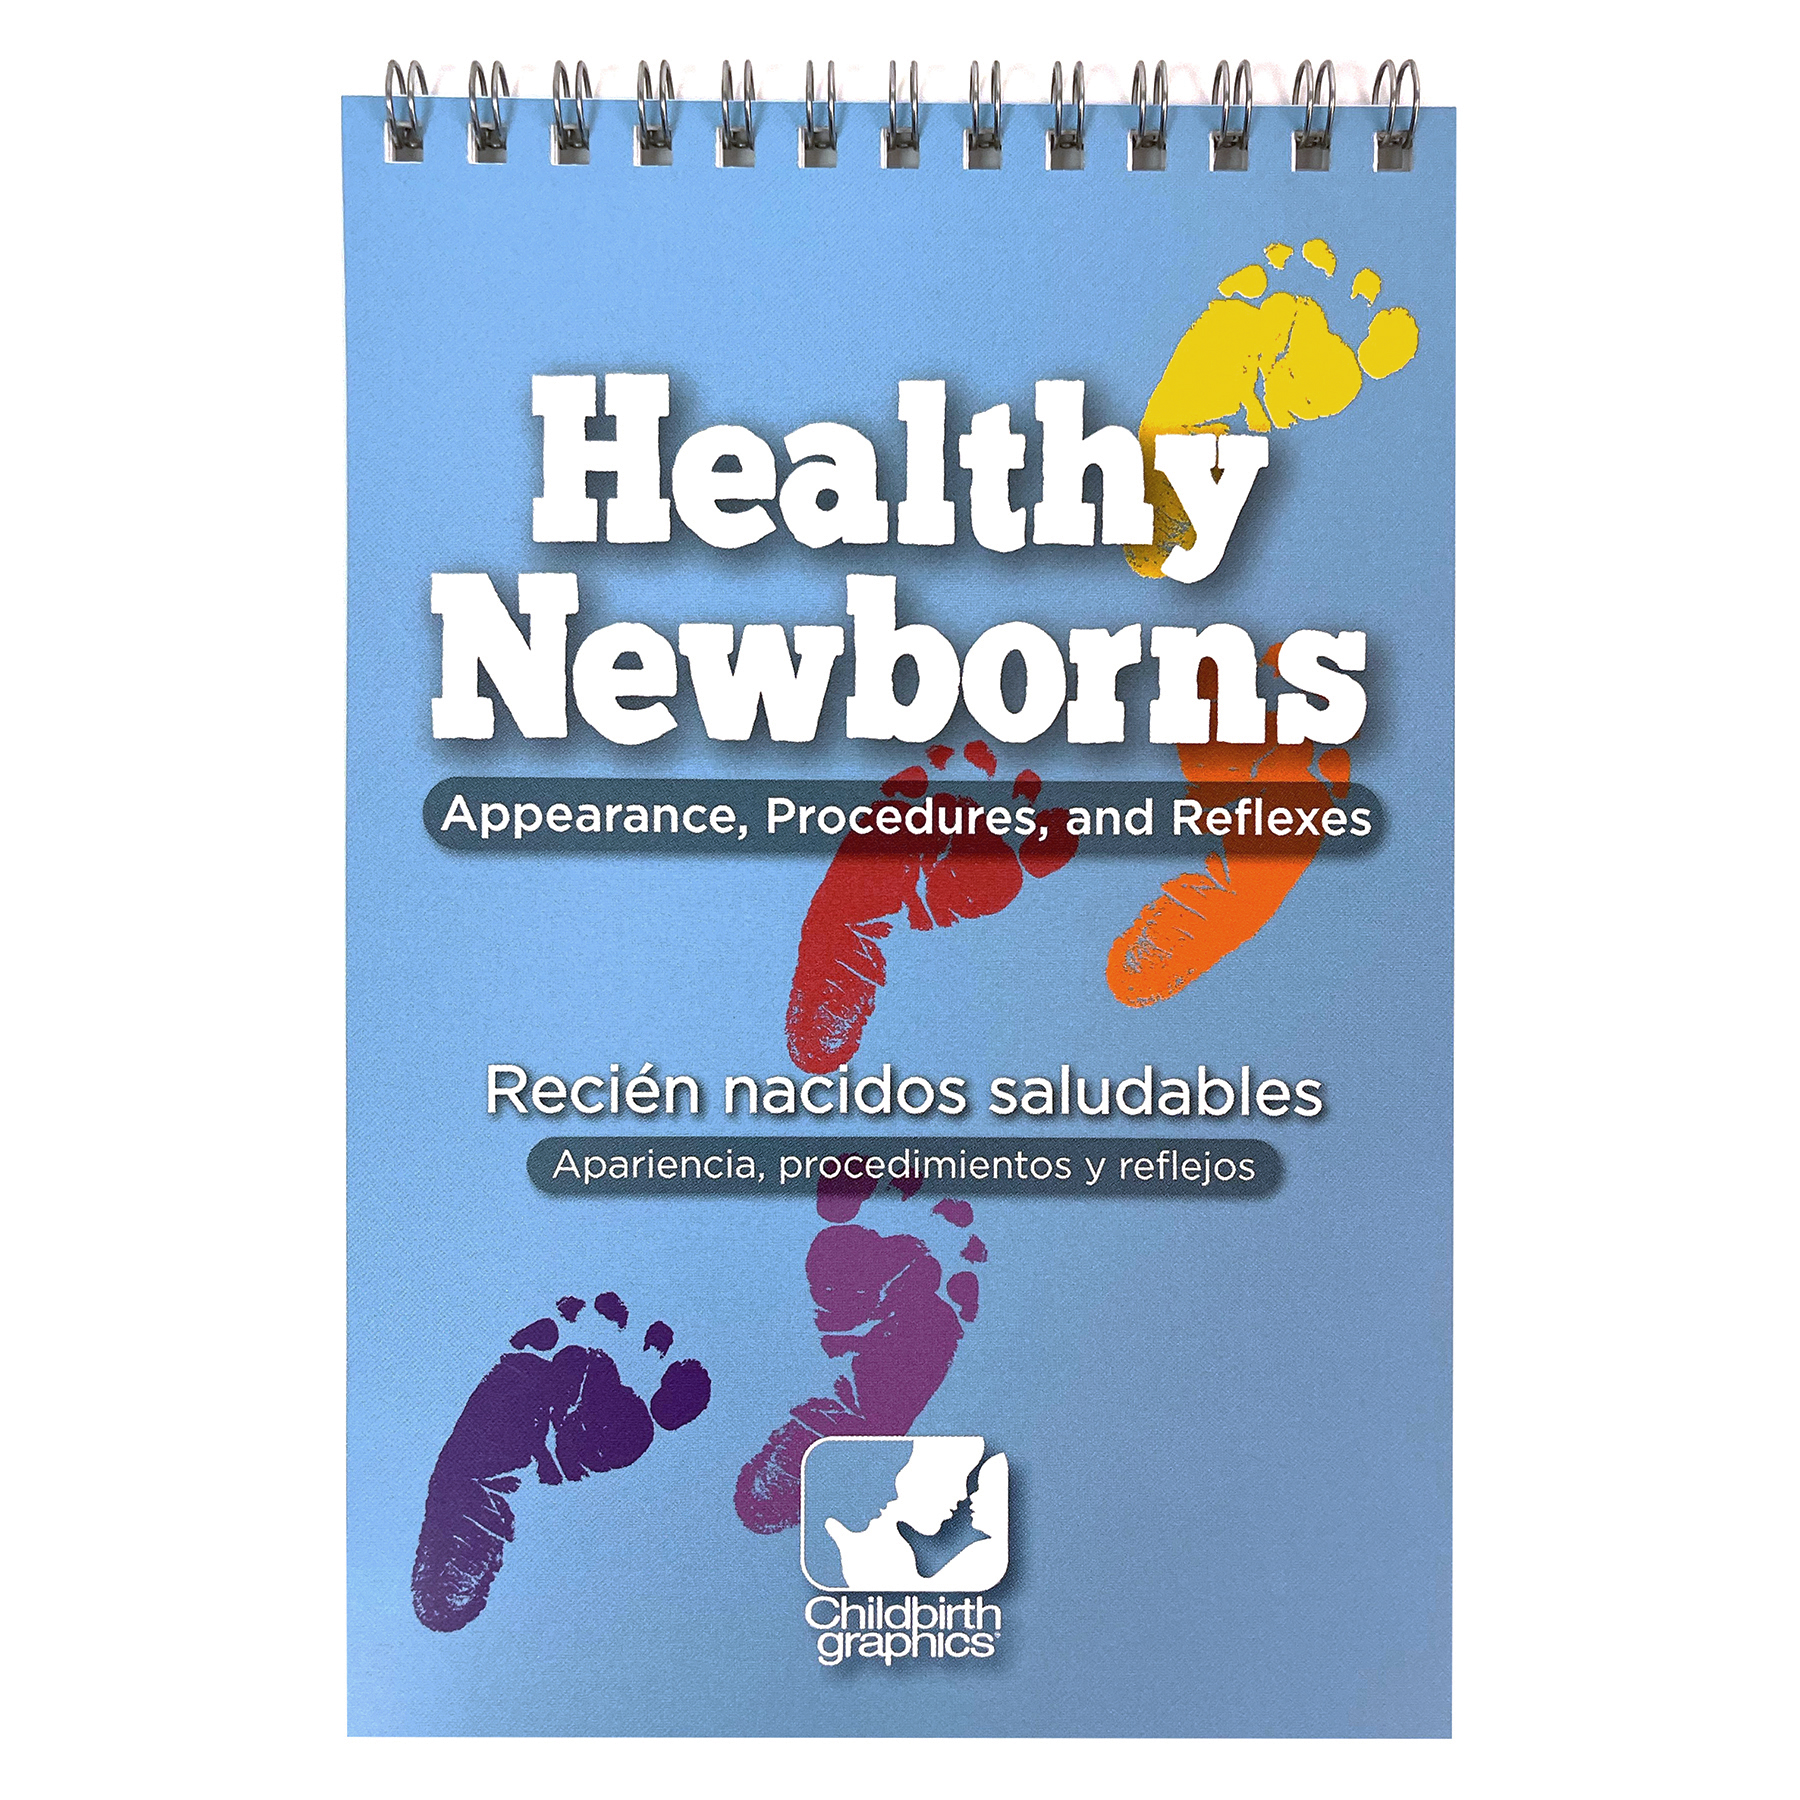 pocket-sized guide to normal newborn appearance and procedures cover image, Childbirth Graphics, 38506